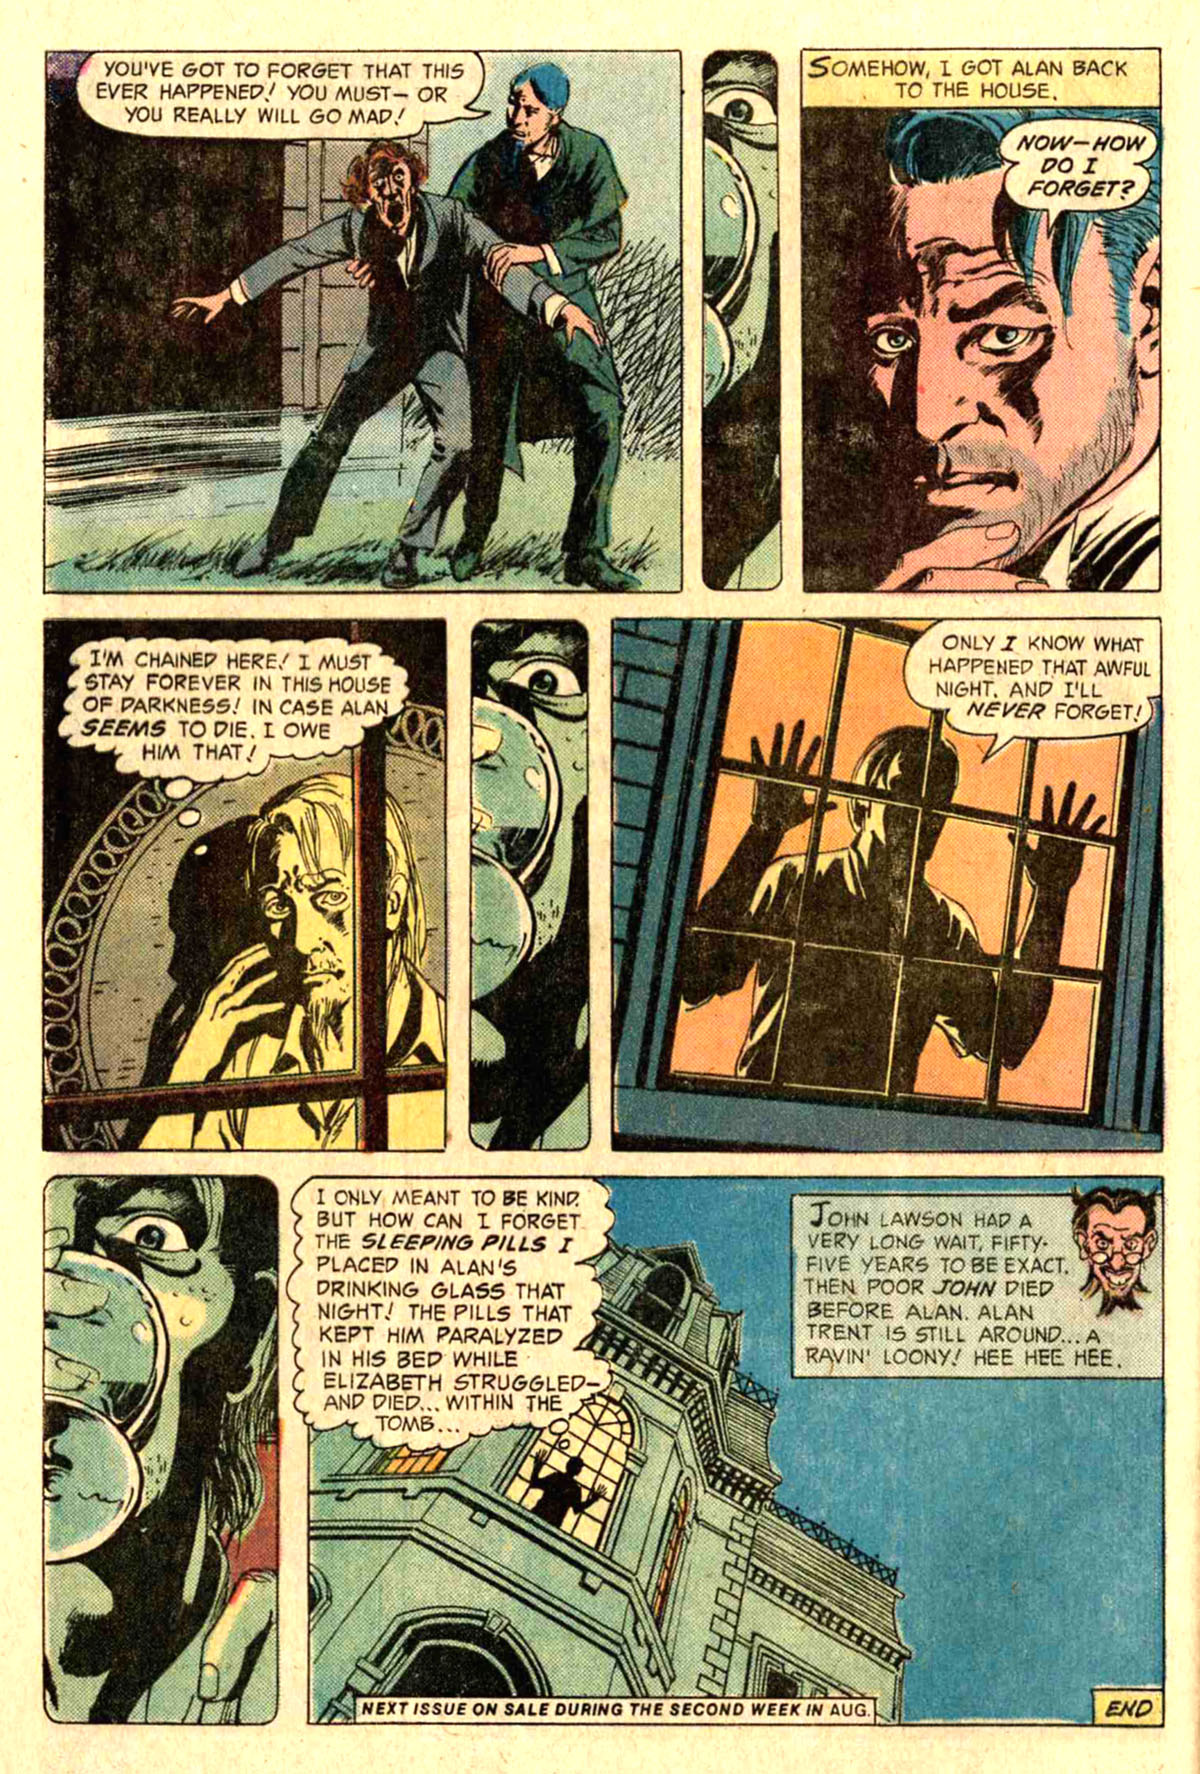 House of Mystery (1951) #236 pg30.